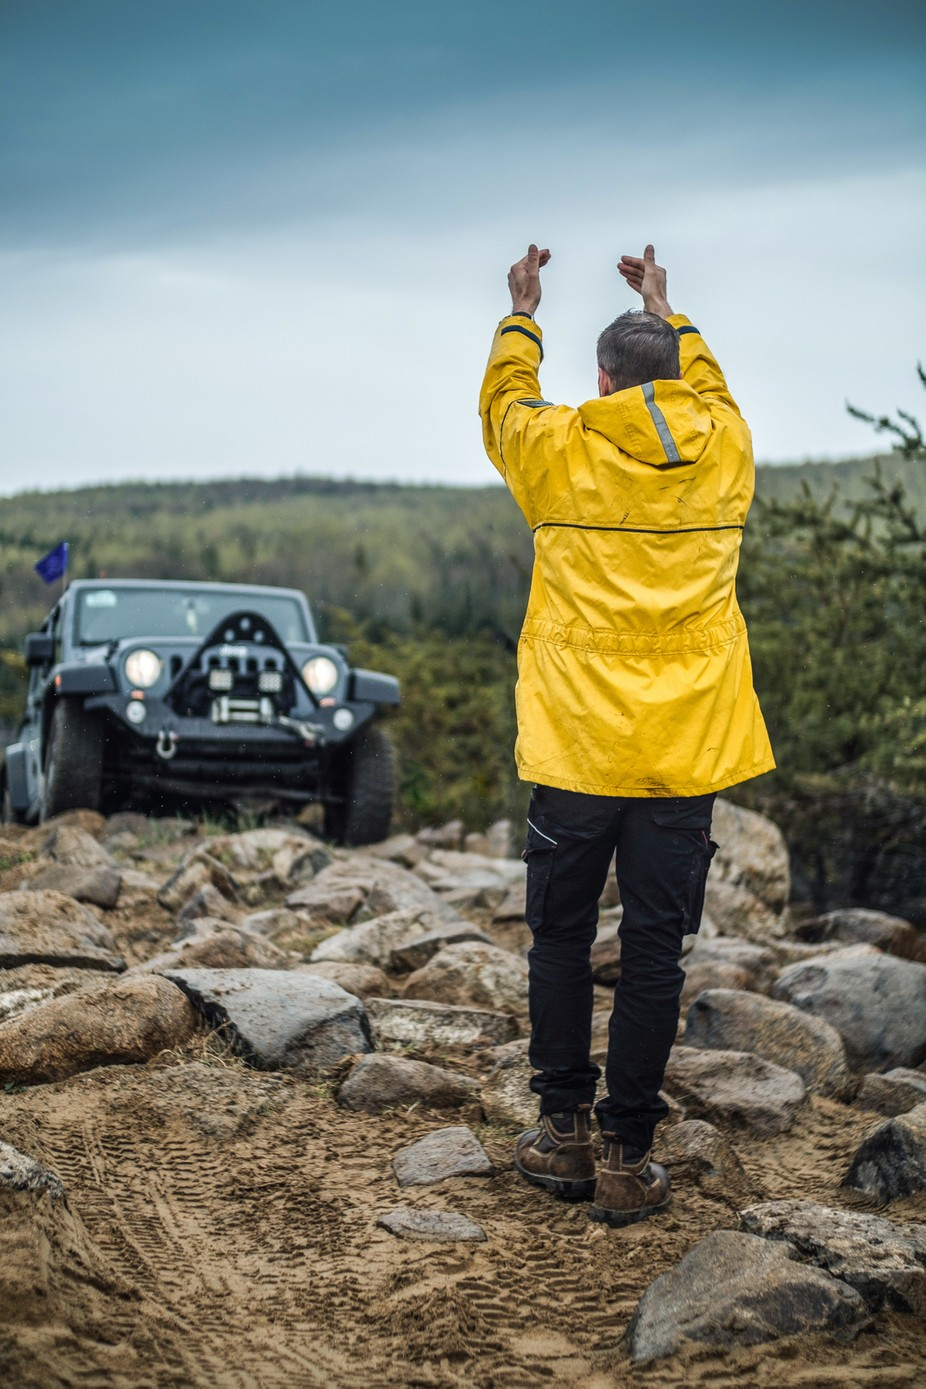 A guide ensures safe passage for a Jeeper on a rocky trail.